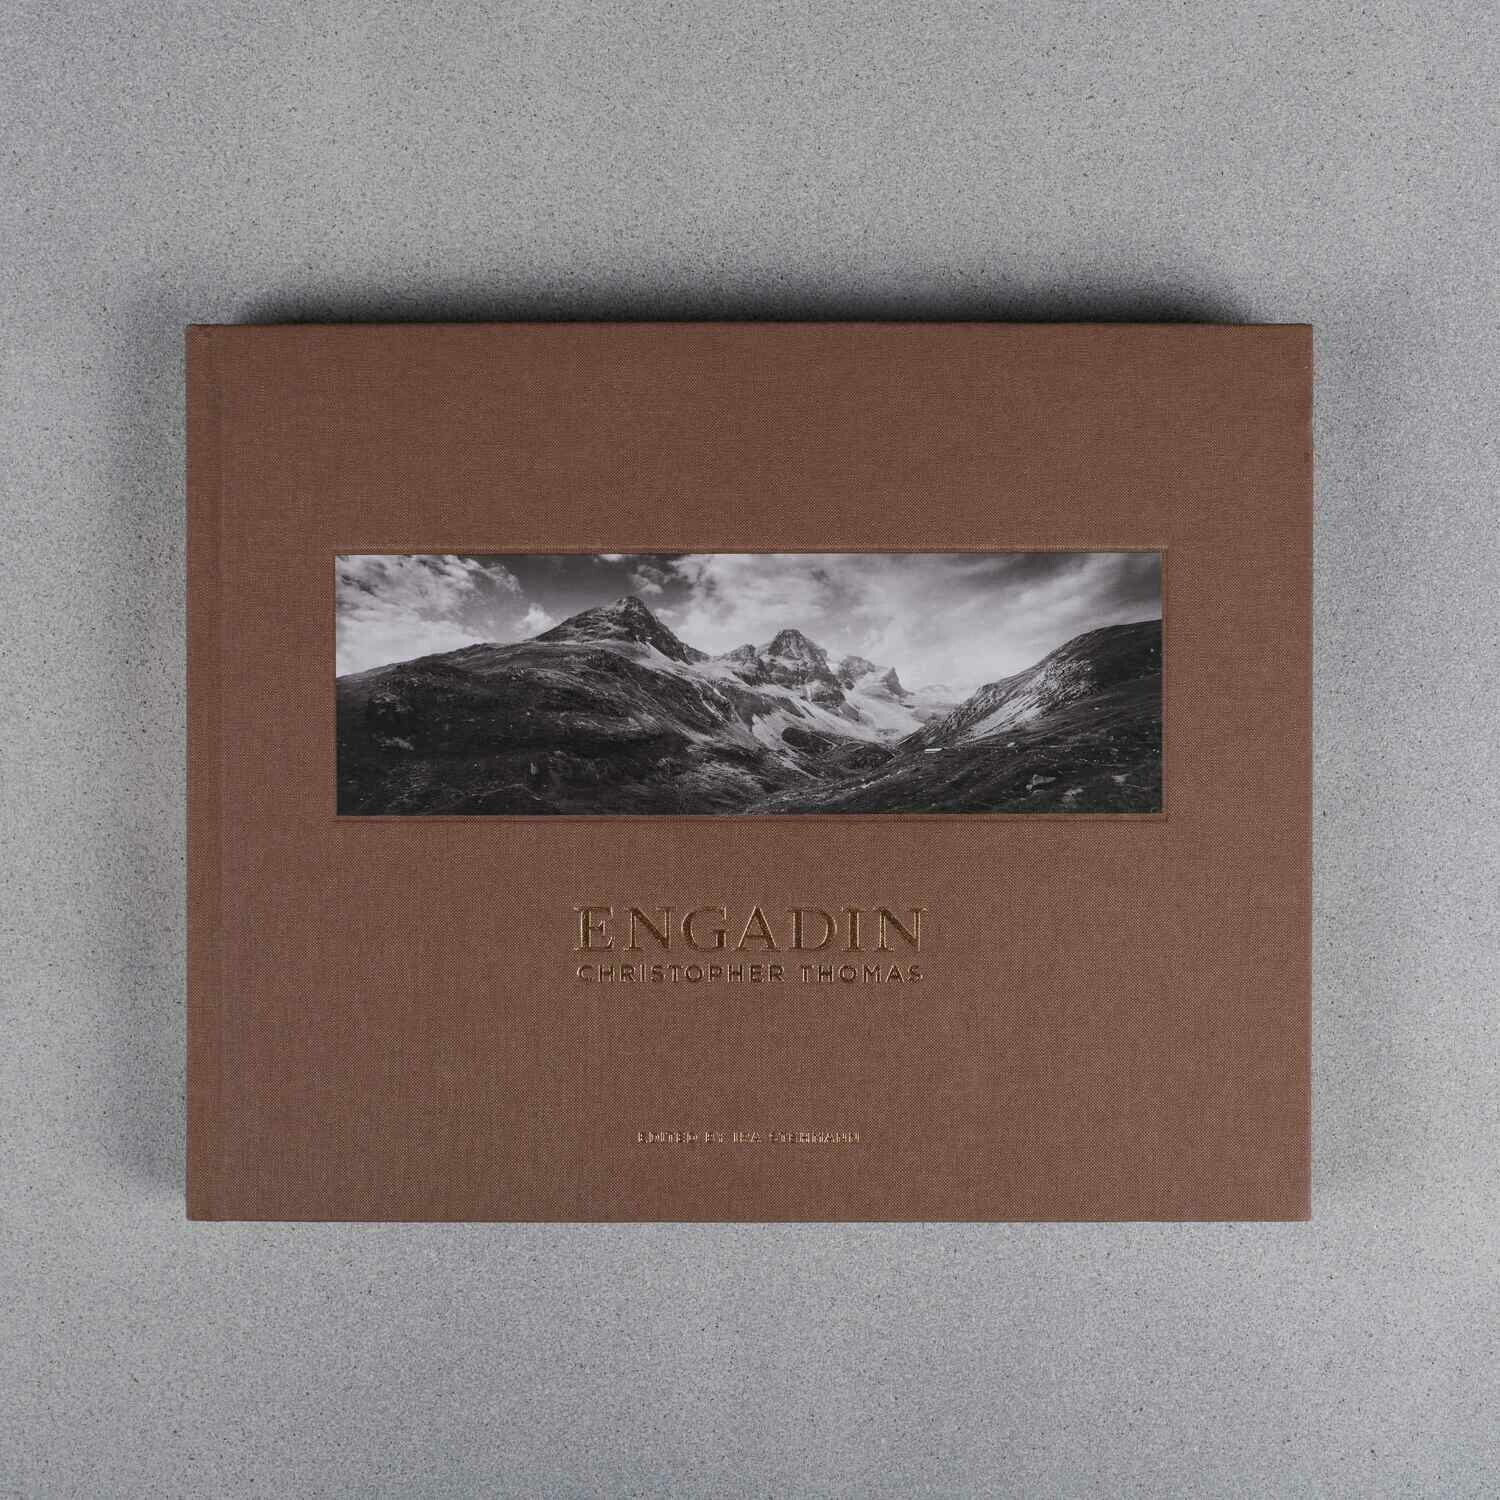 Engadin - Cristopher Thomas